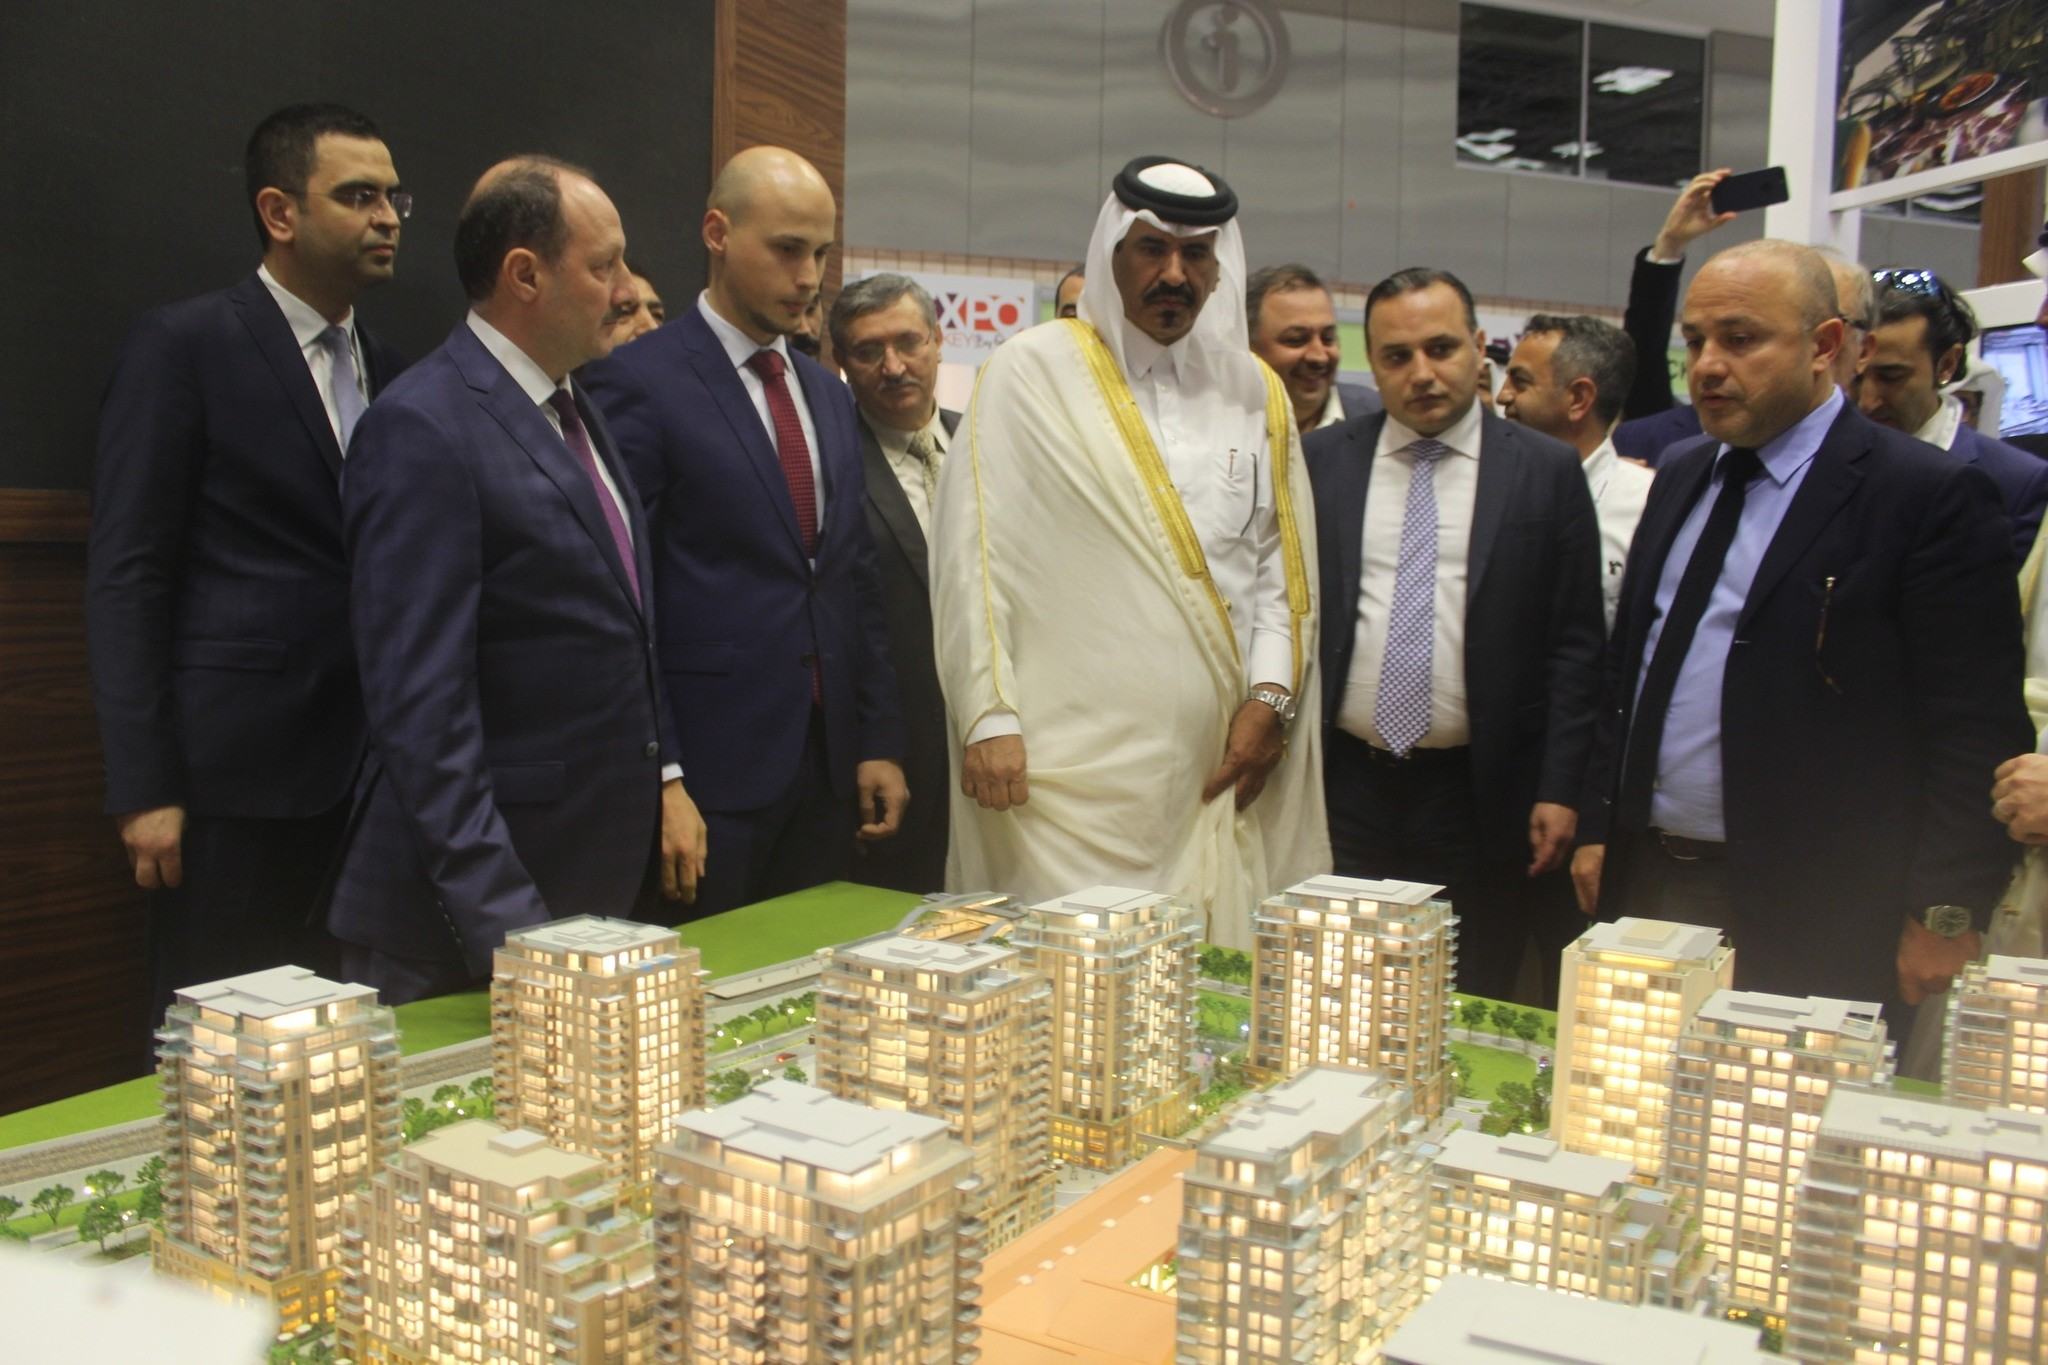 Expo Turkey by Qatar hosts the prominent names of the Turkish business world in real estate, furniture, healthcare and other sectors as well as Qatari investors.